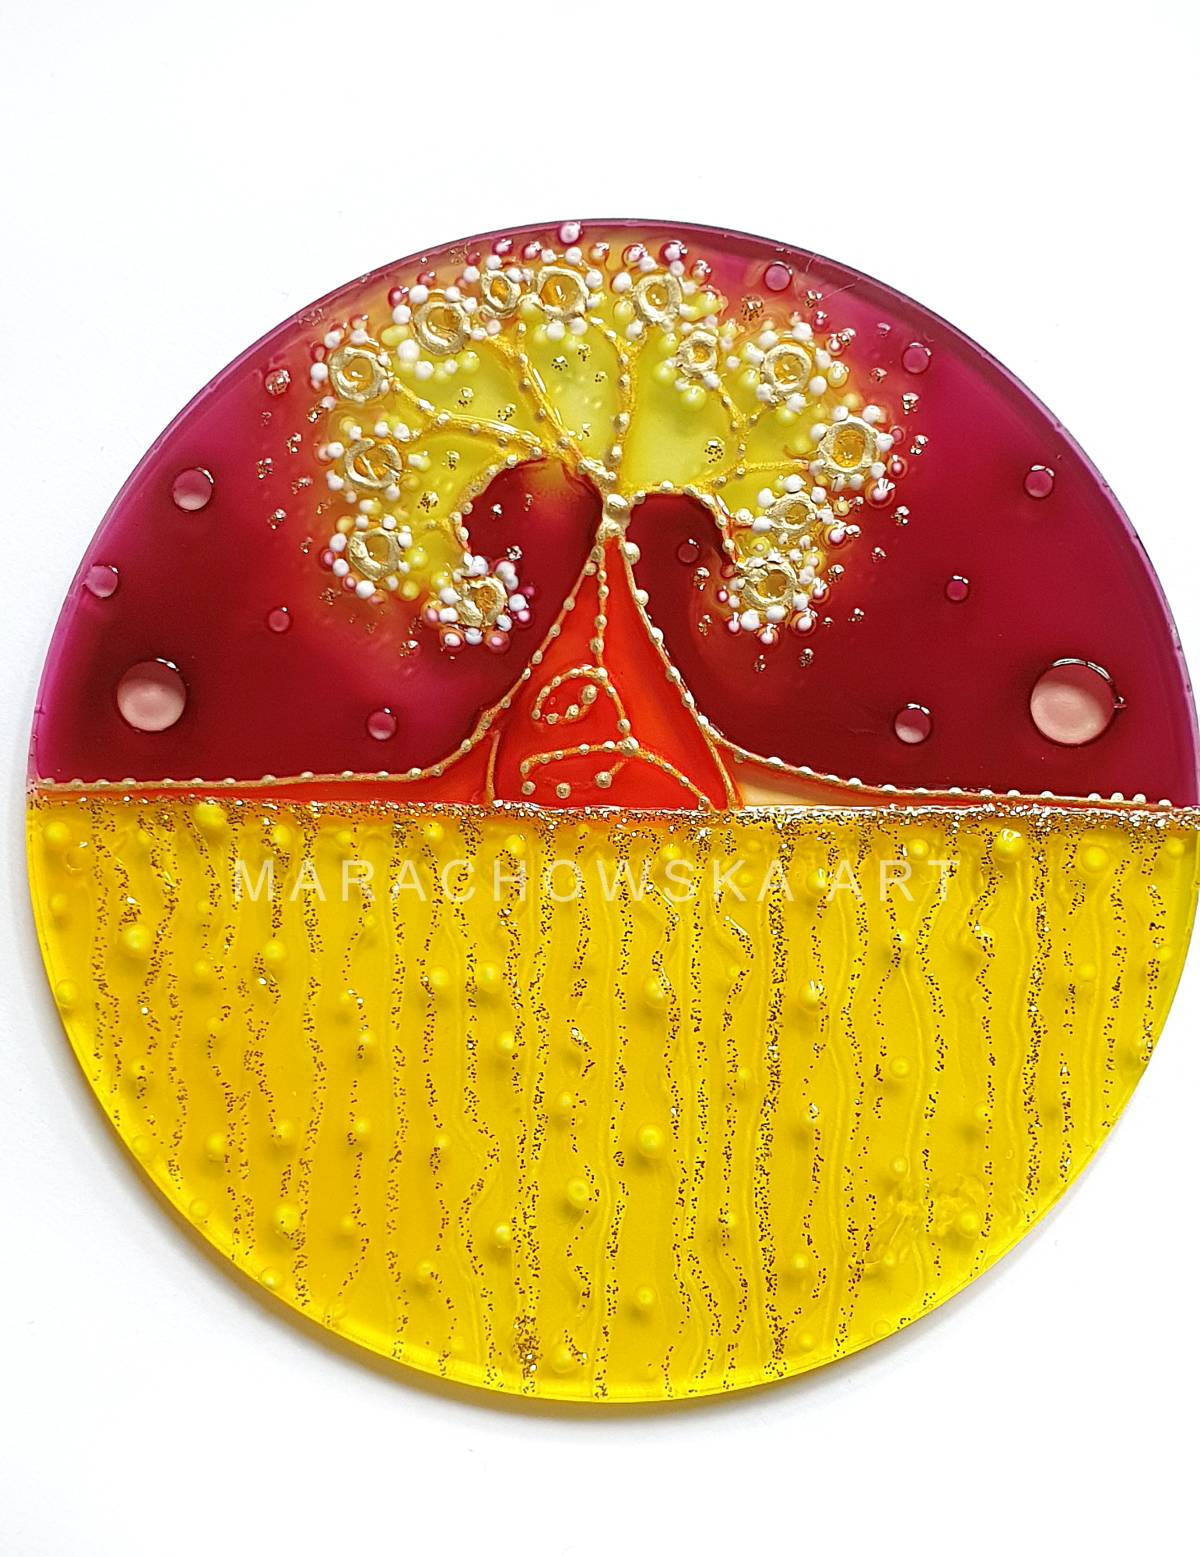 red-circular-art-glass-painting-2019-marachowskaart-maria